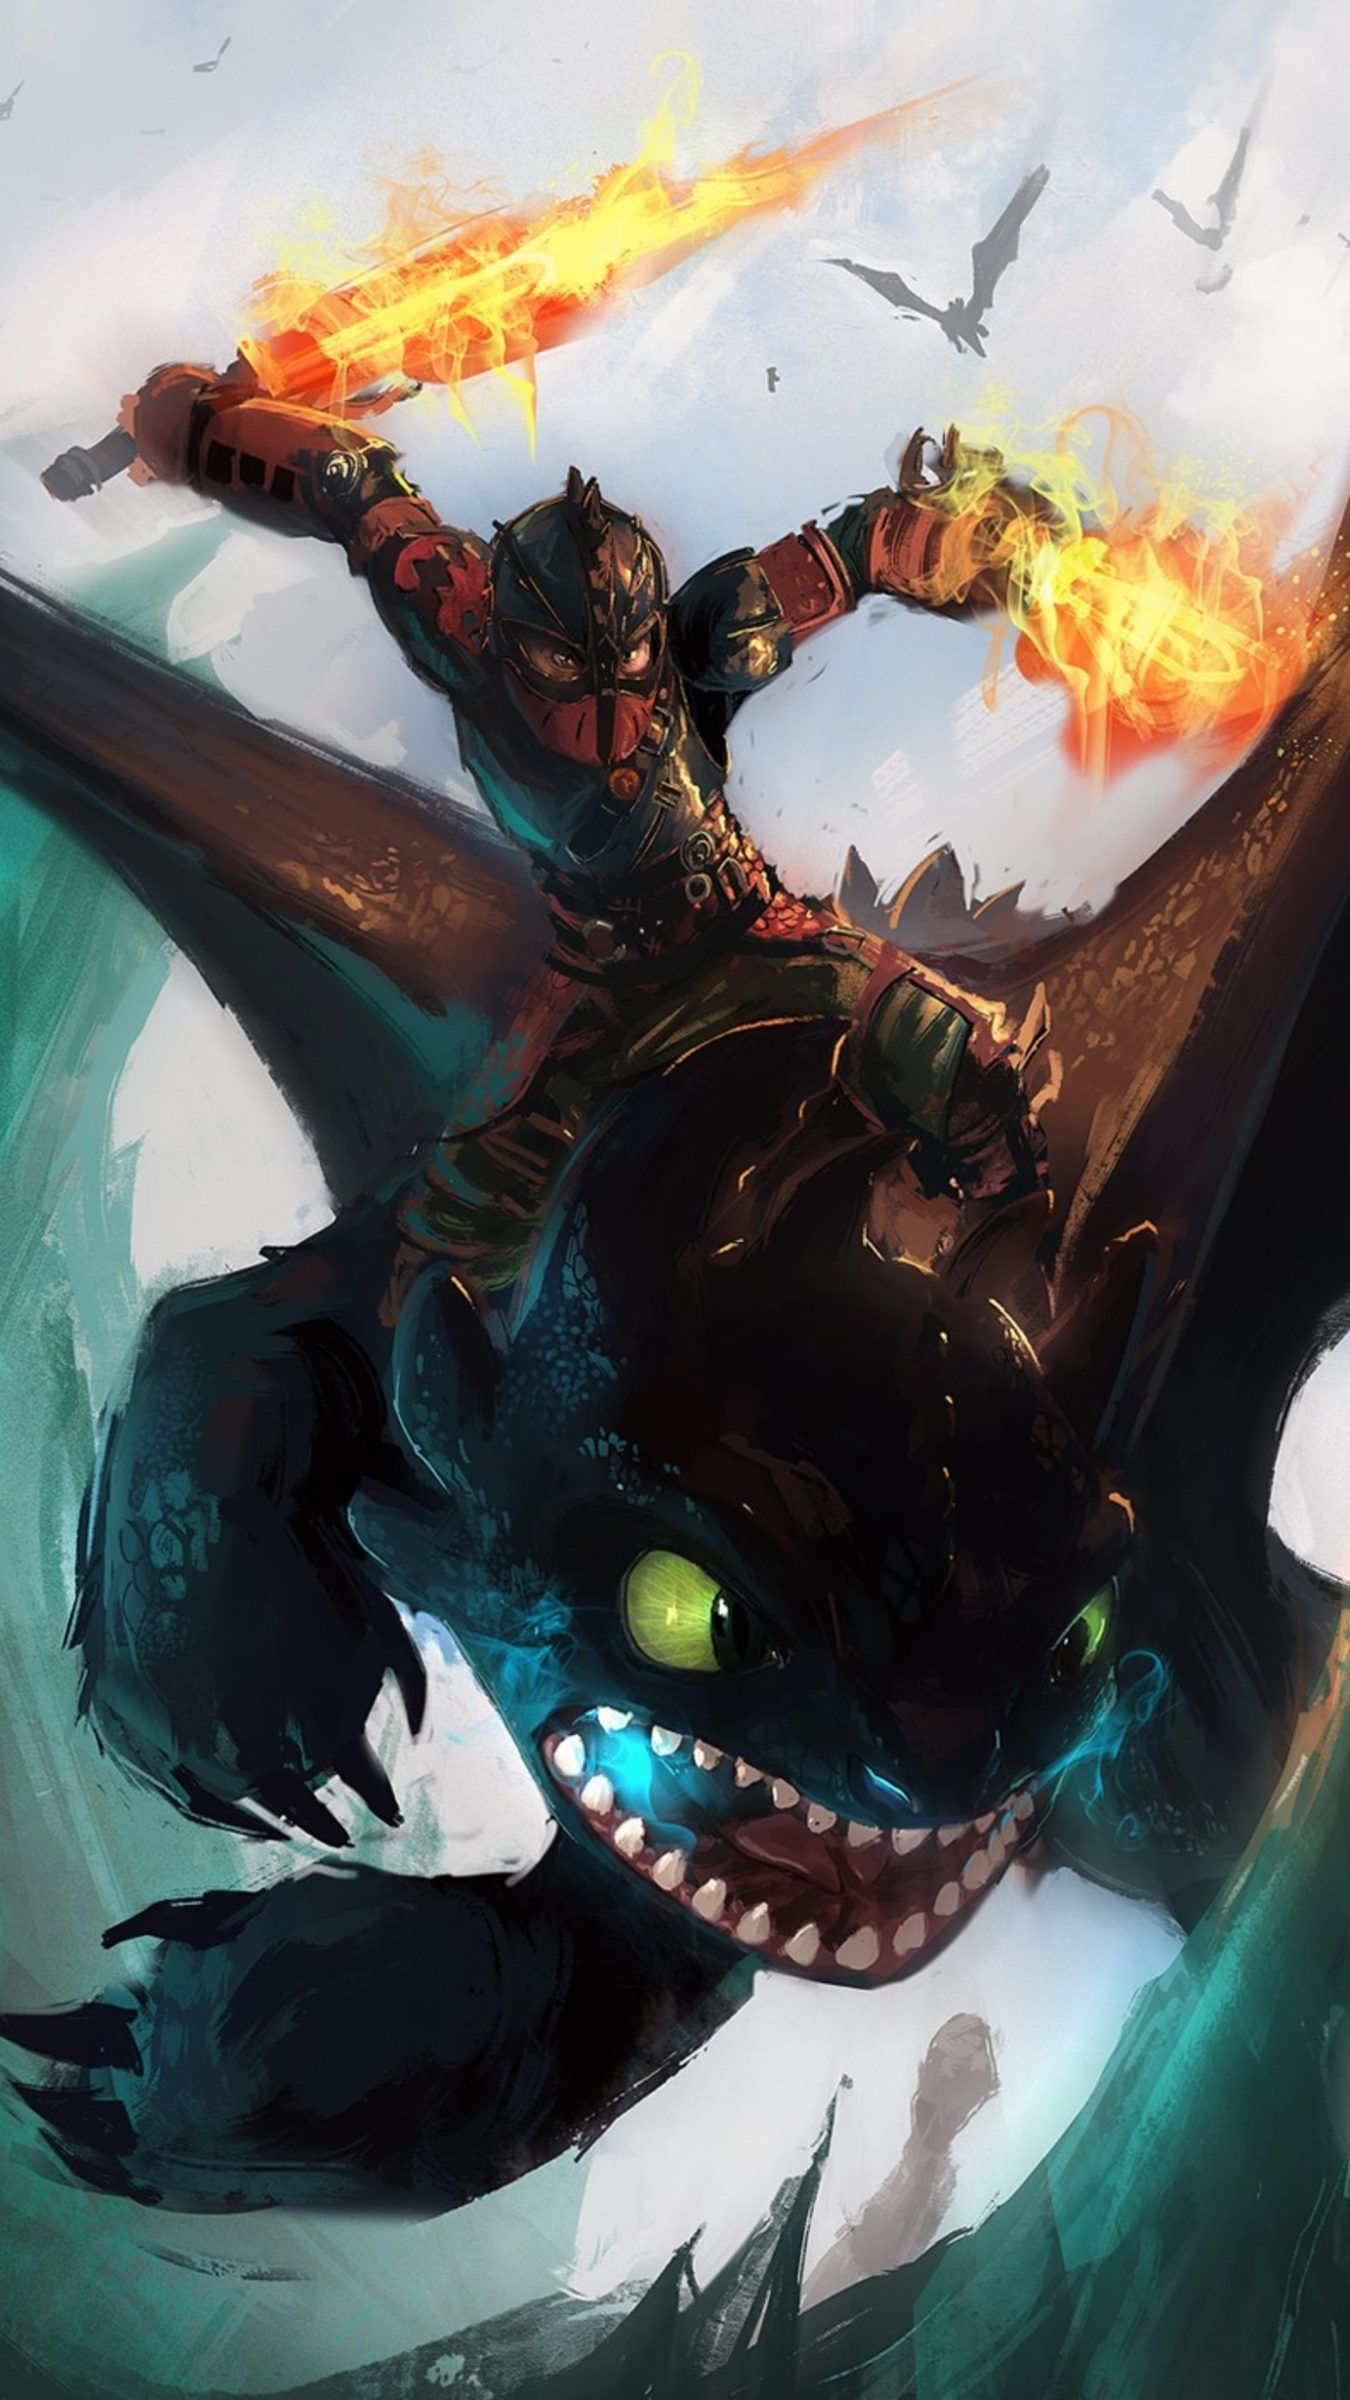 How To Train Your Dragon The Hidden World Hd Wallpapers 7wallpapers Net How Train Your Dragon How To Train Dragon How To Train Your Dragon